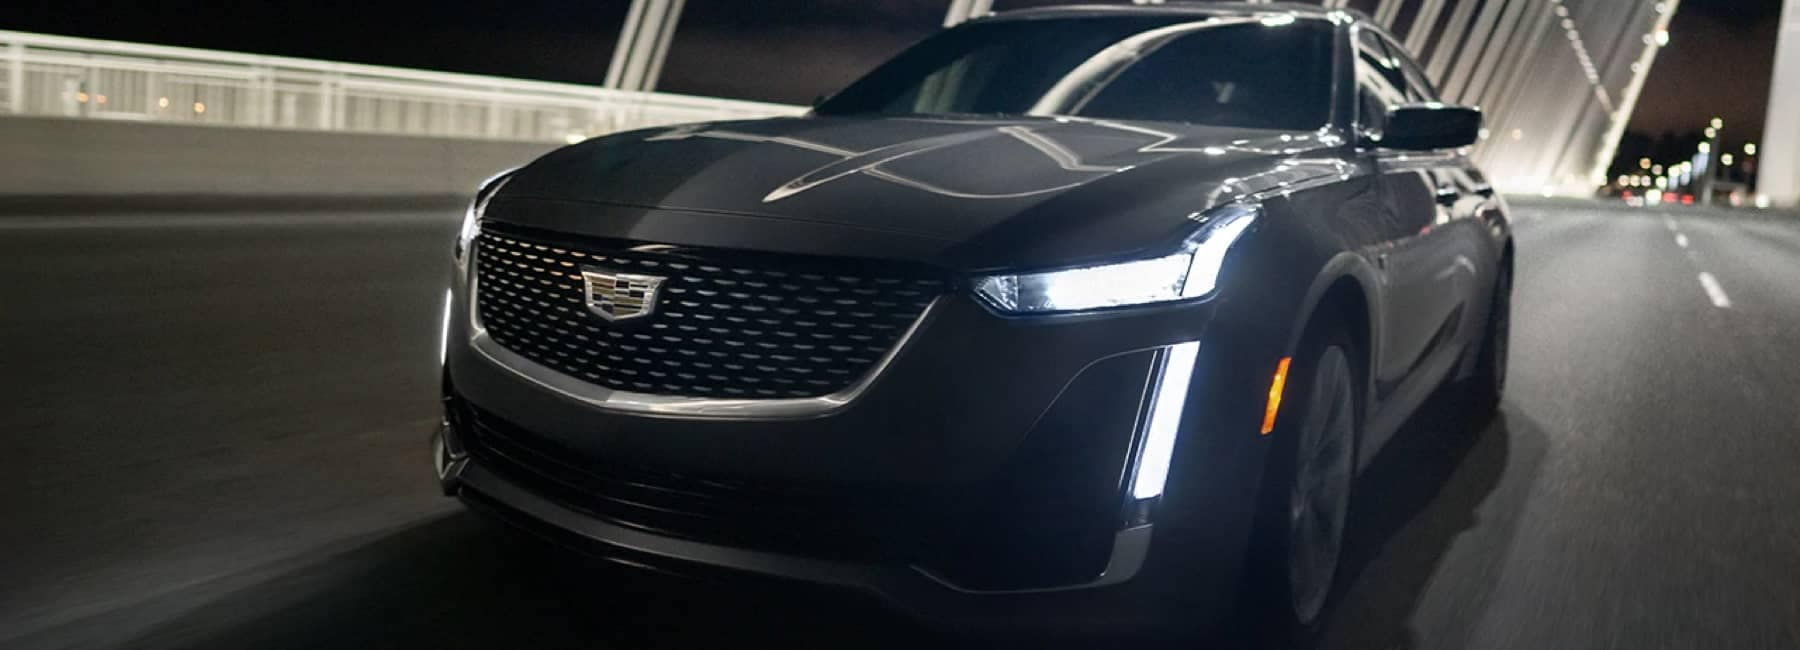 2020 CT5 Front Grille driving at night